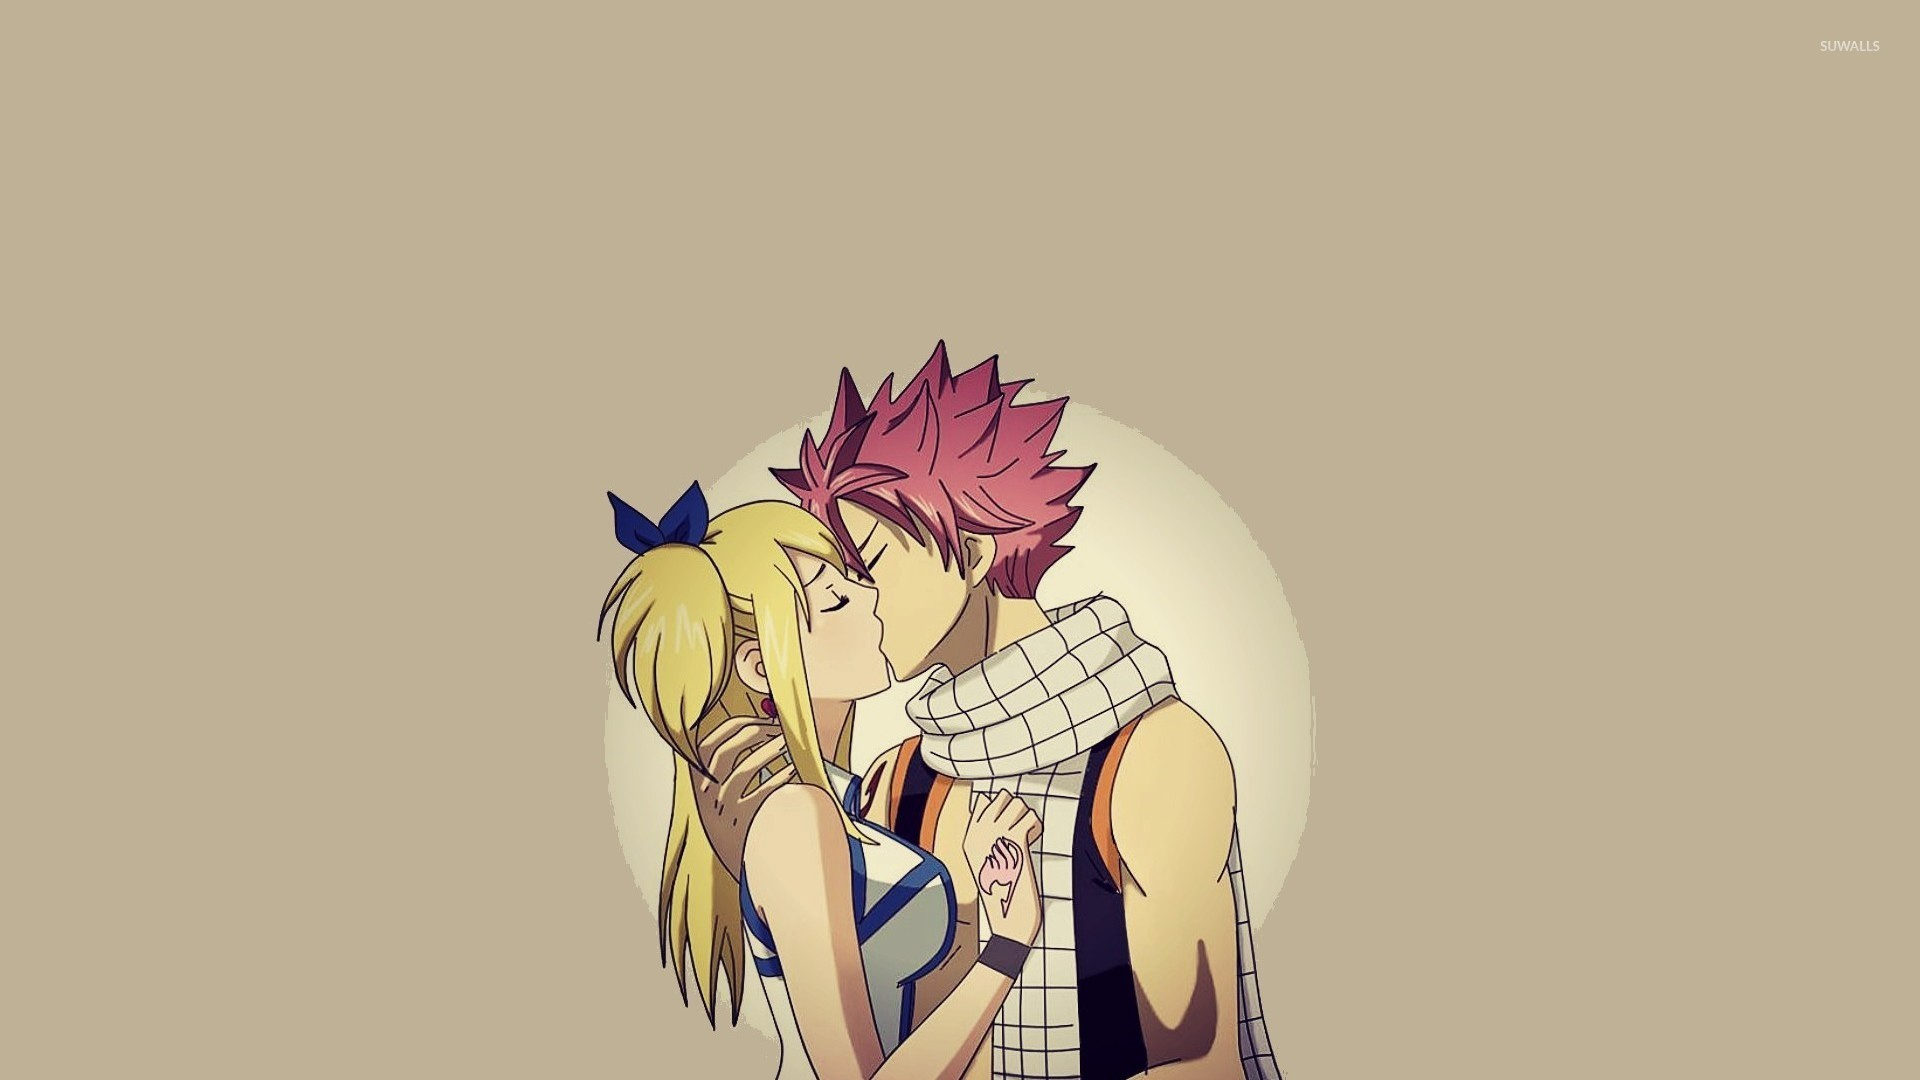 Lucy and natsu fairy tail wallpaper anime wallpapers - Fairy tail natsu x lucy ...